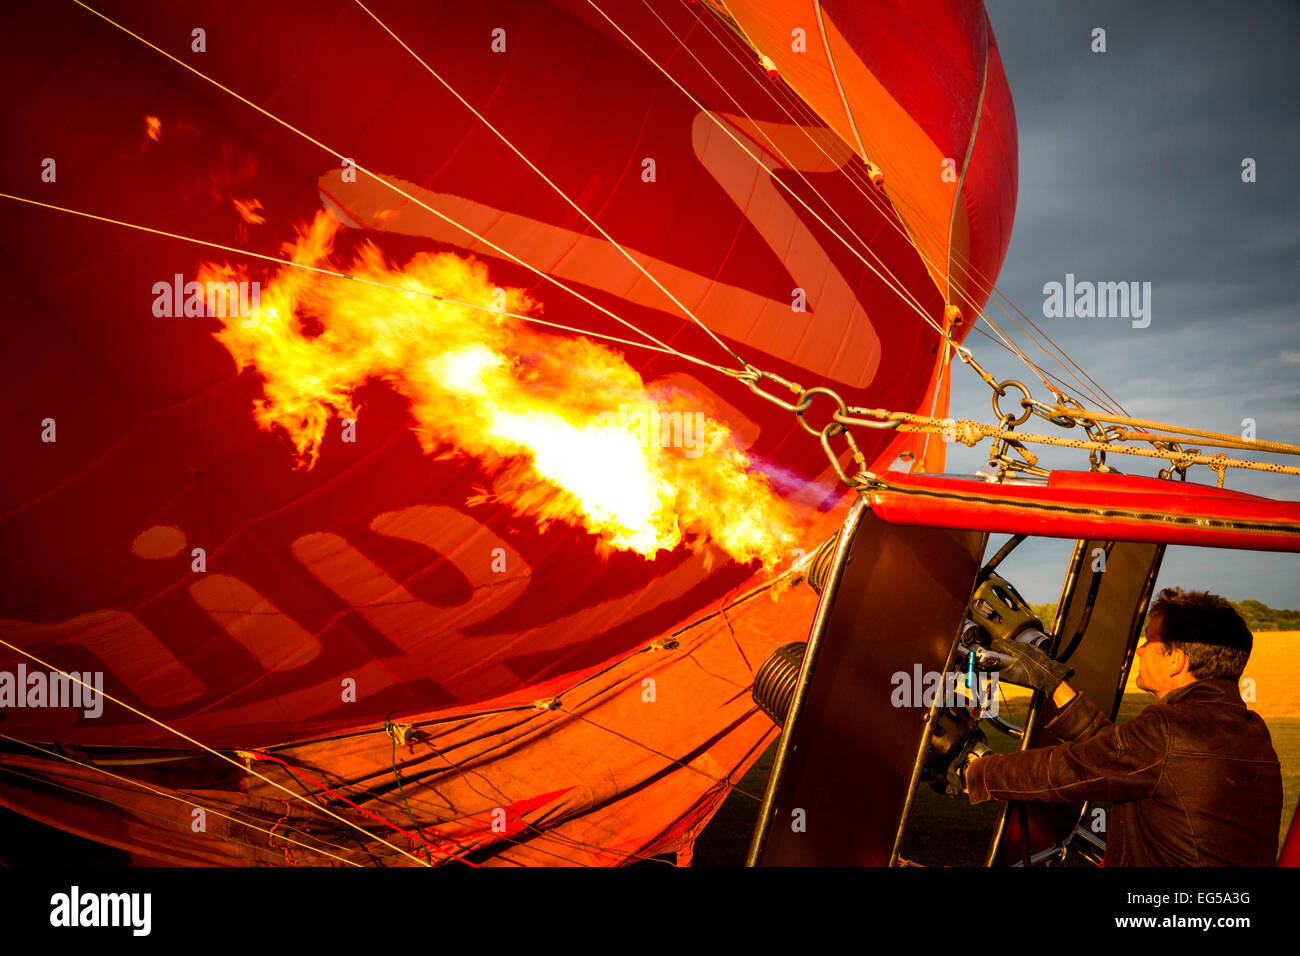 Man controlling gas burner flames inflating red hot air balloon, South Oxfordshire, England - Stock Image